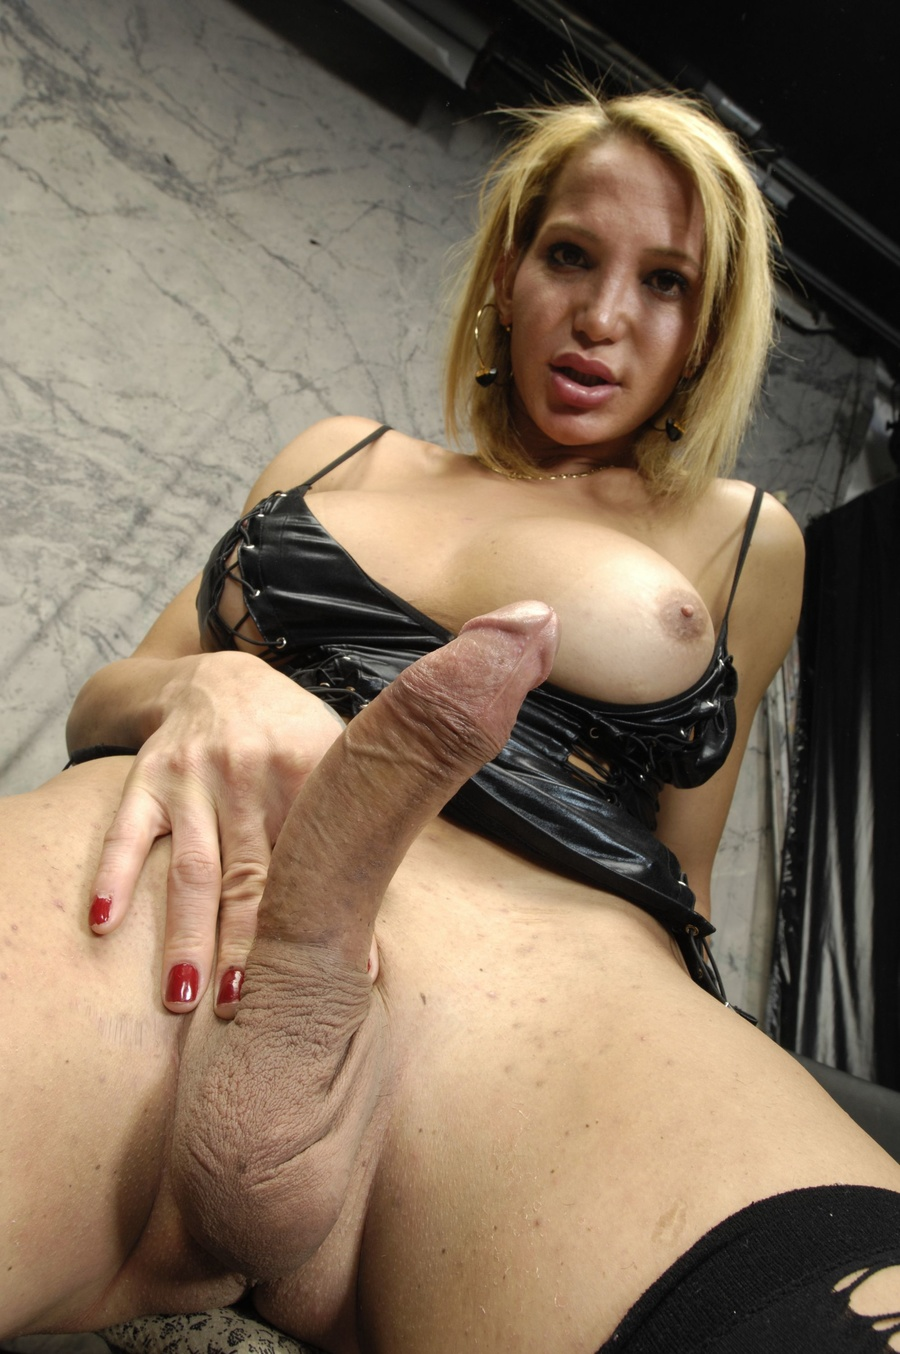 image Uk london milf toys and gapes for your comments